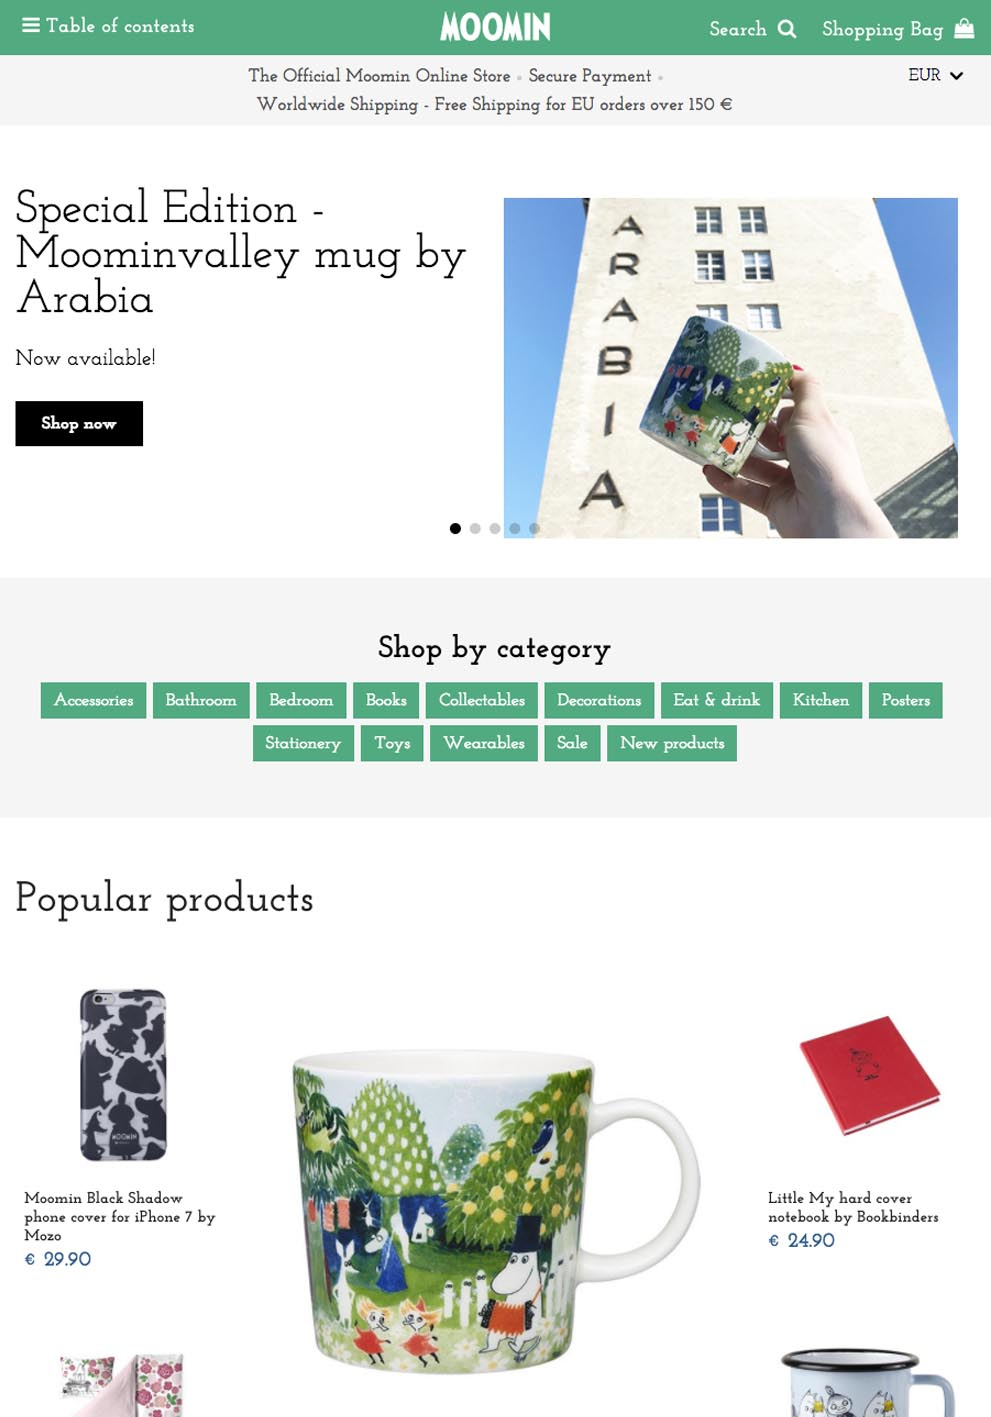 The Official Moomin Shop